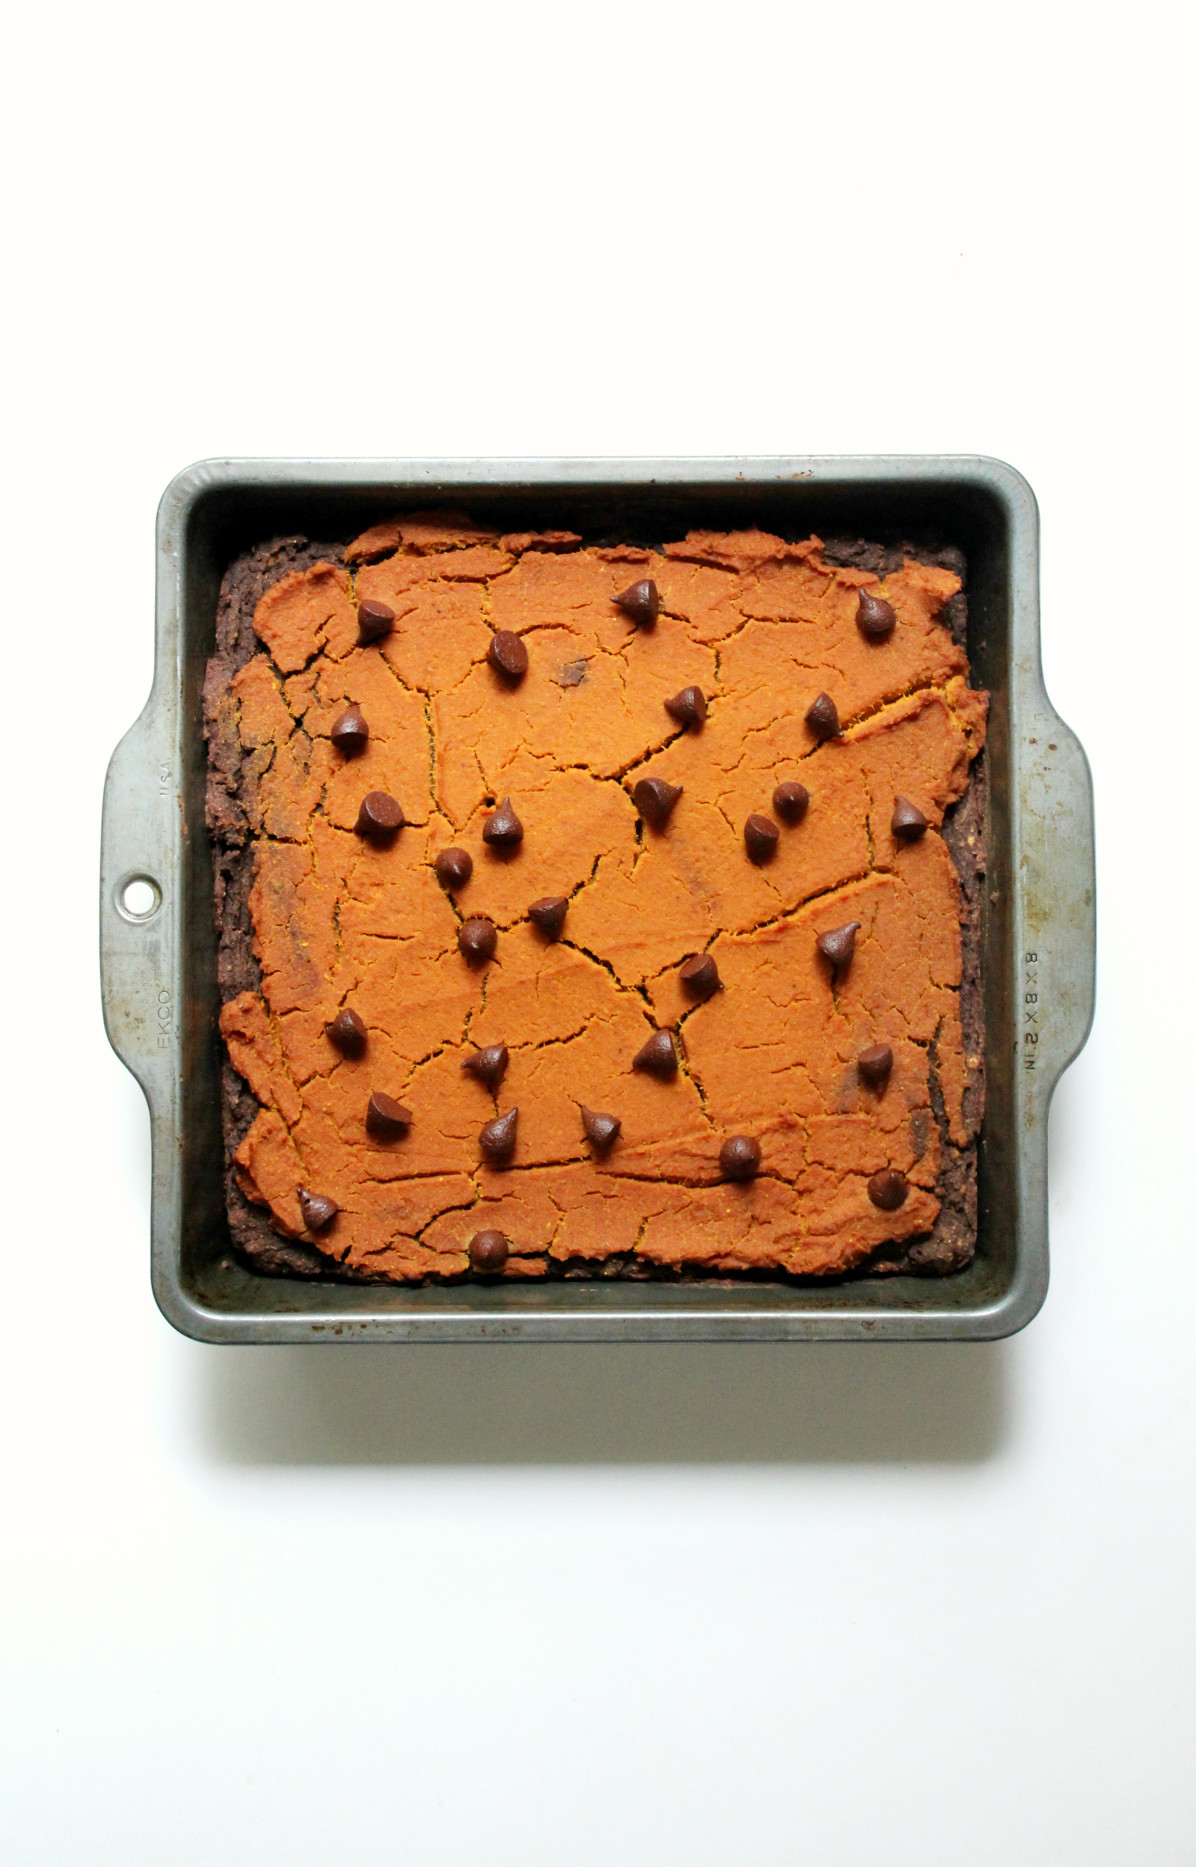 Pumpkin Peanut Butter Layer Brownies | Strength and Sunshine @RebeccaGF666 Where pumpkin, peanut, and chocolate combine! Pumpkin Peanut Butter Layer Brownies will make you rethink your definition of brownie. These gluten-free and vegan brownies are the healthiest of holiday indulgences, you won't have to stop at one! They can be dessert or breakfast!